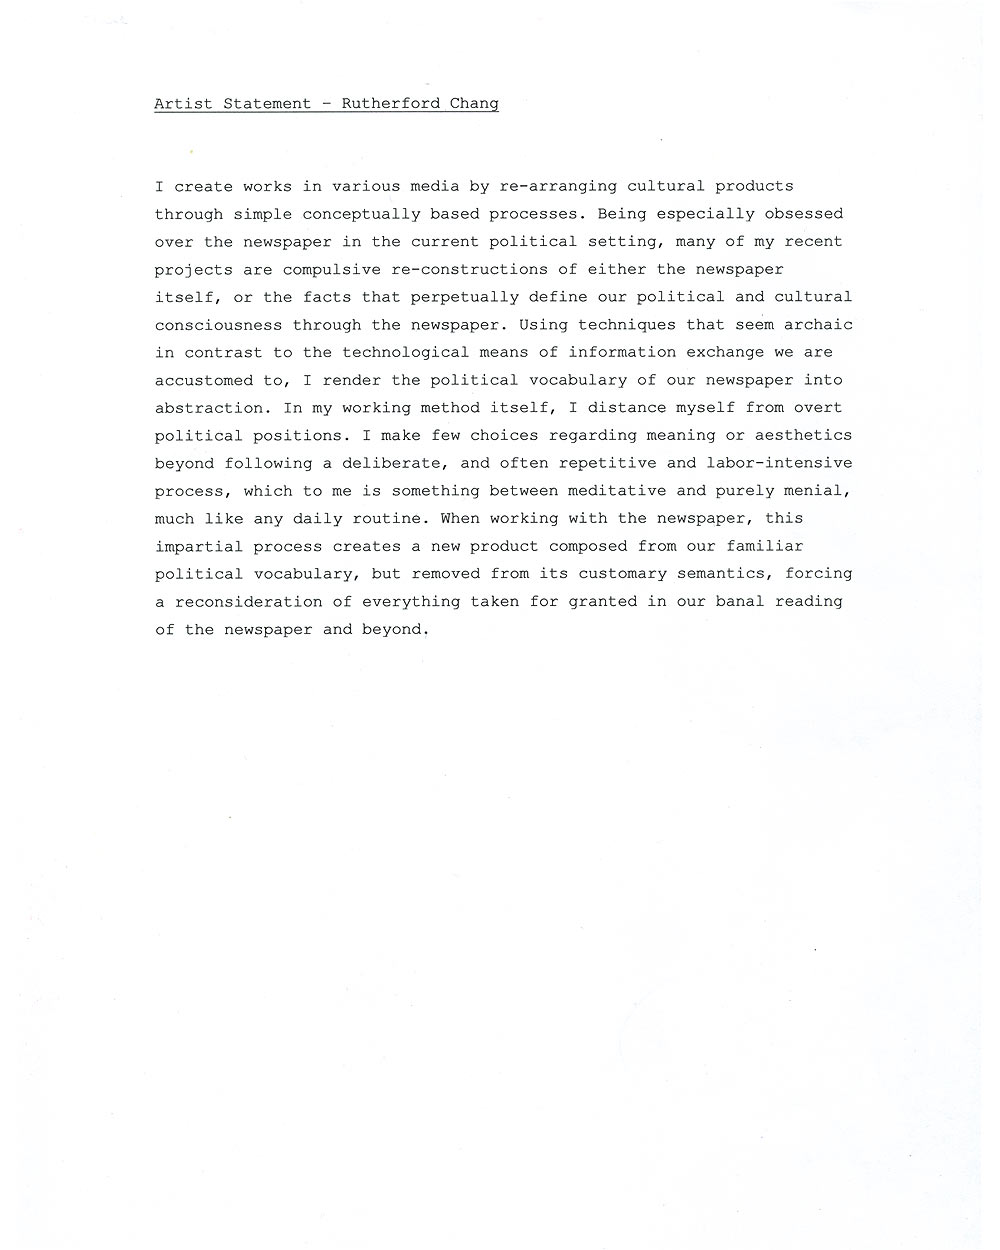 Rutherford Chang's artist's statement